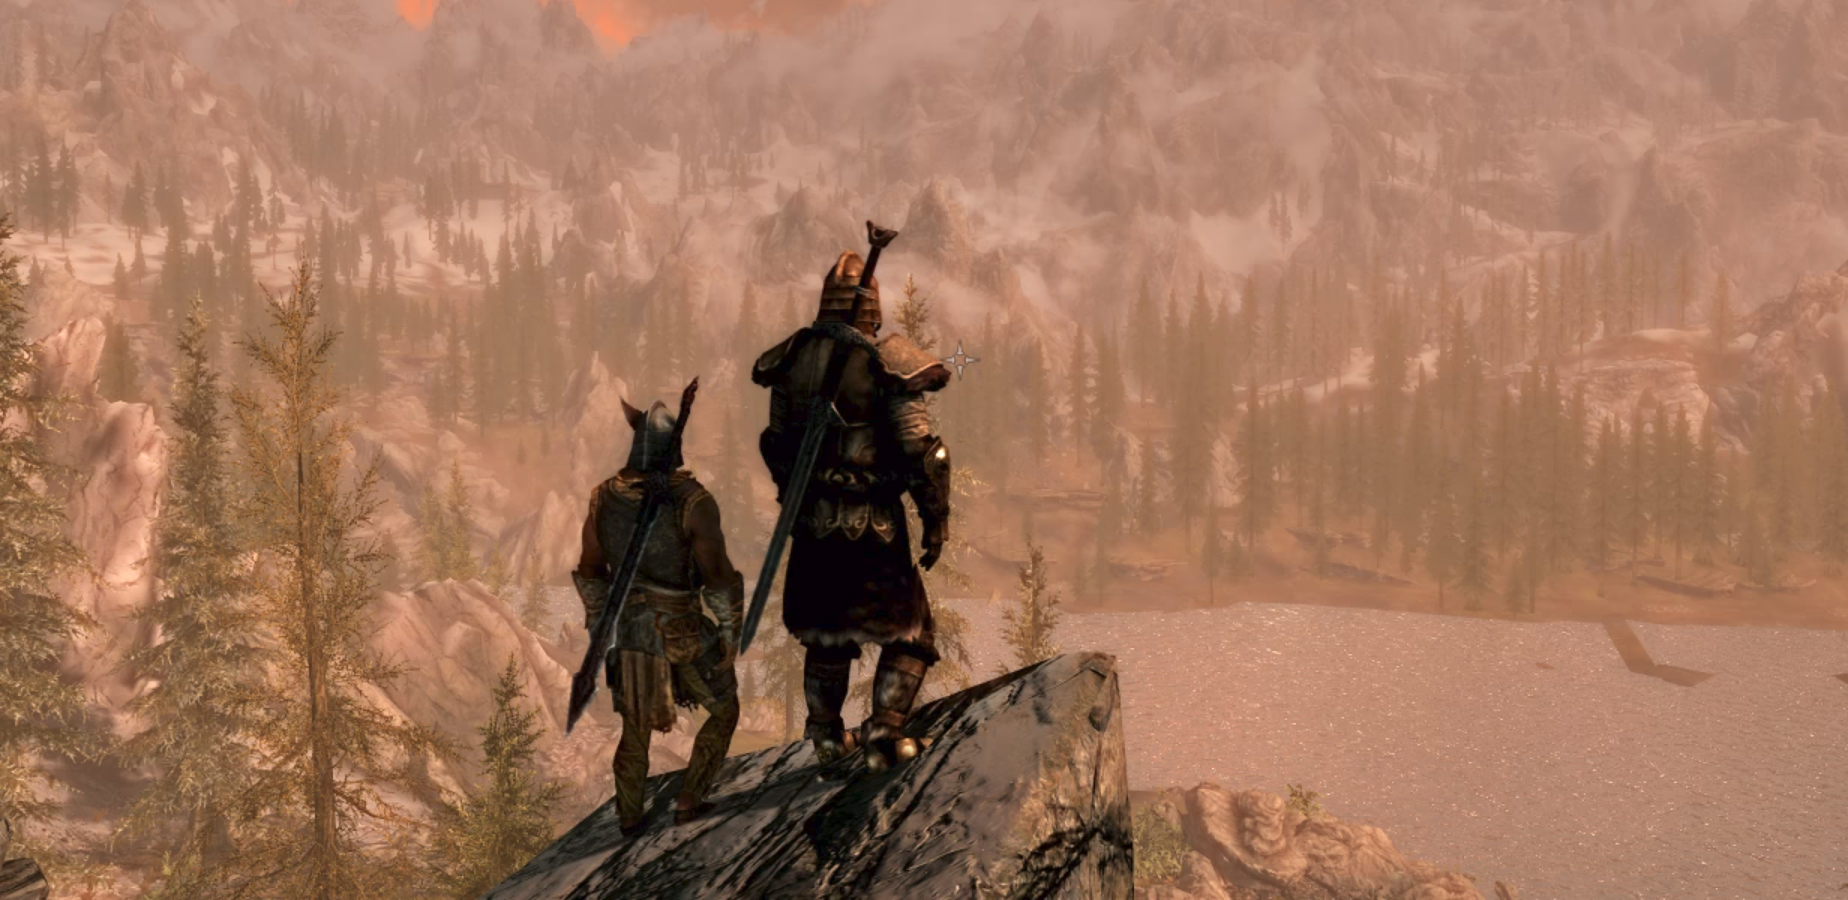 Skyrim Together modders reveal death threats from community | PC Gamer